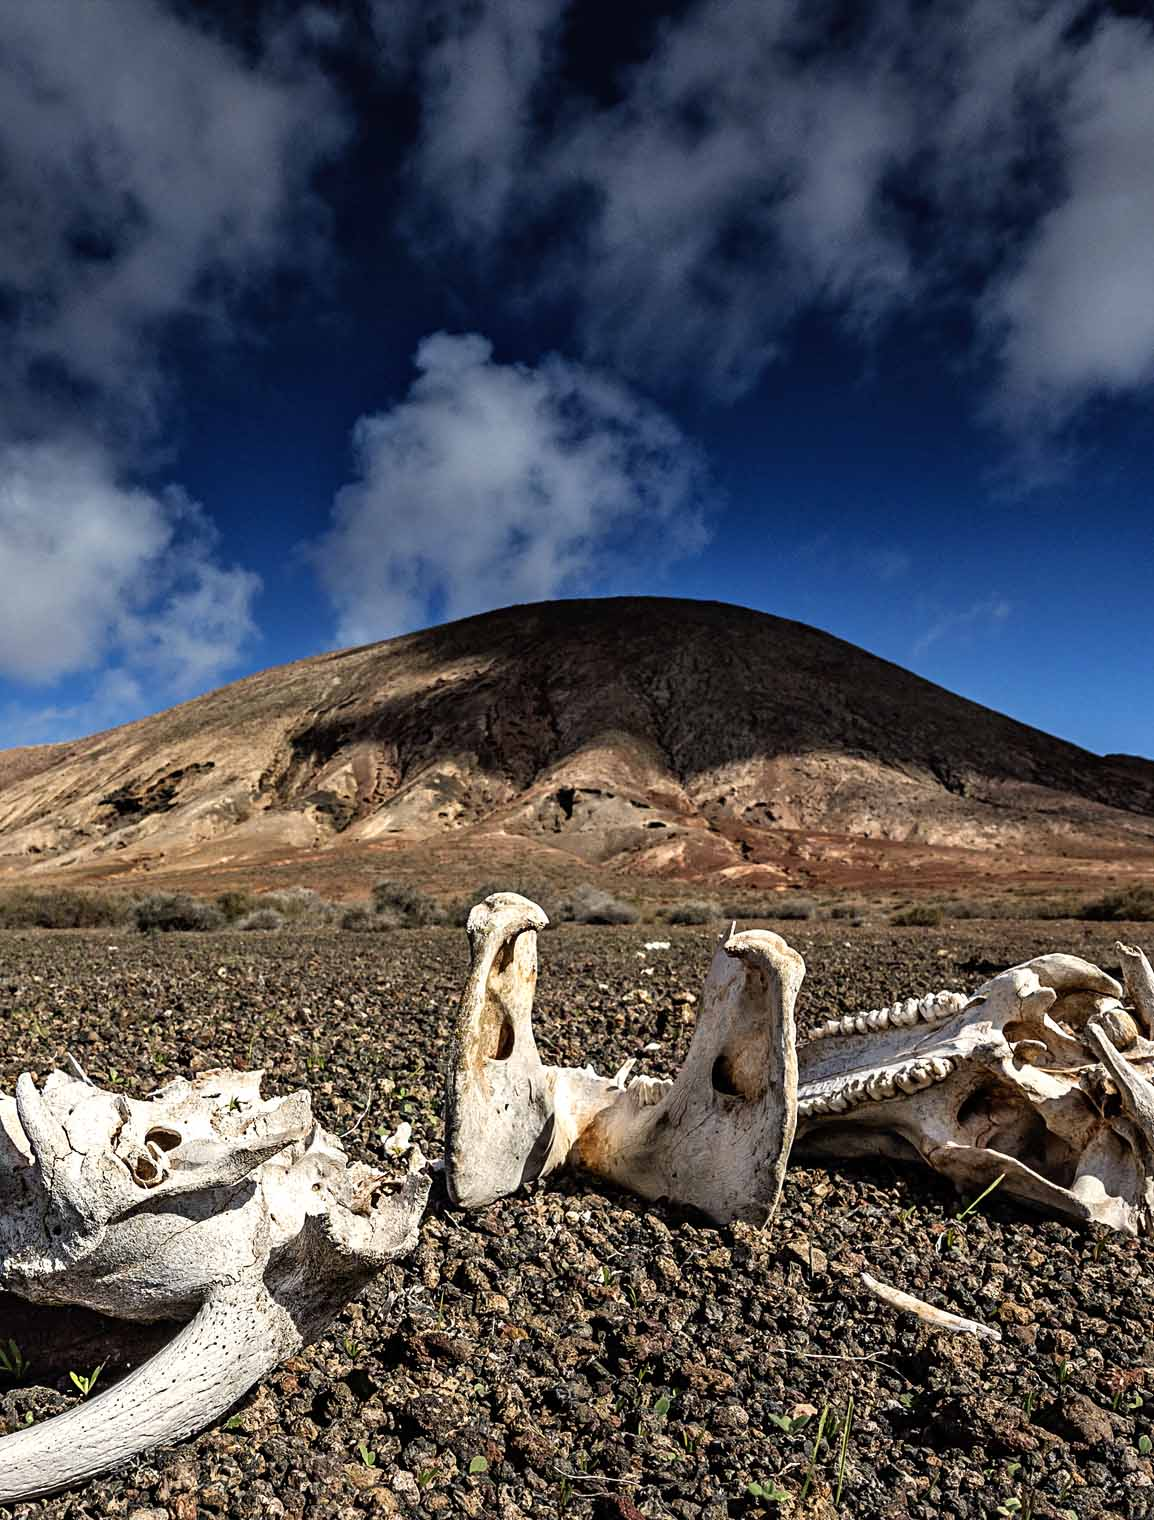 places_fuerteventura_dirt_soil_heat_ground_dead_skulls_bones